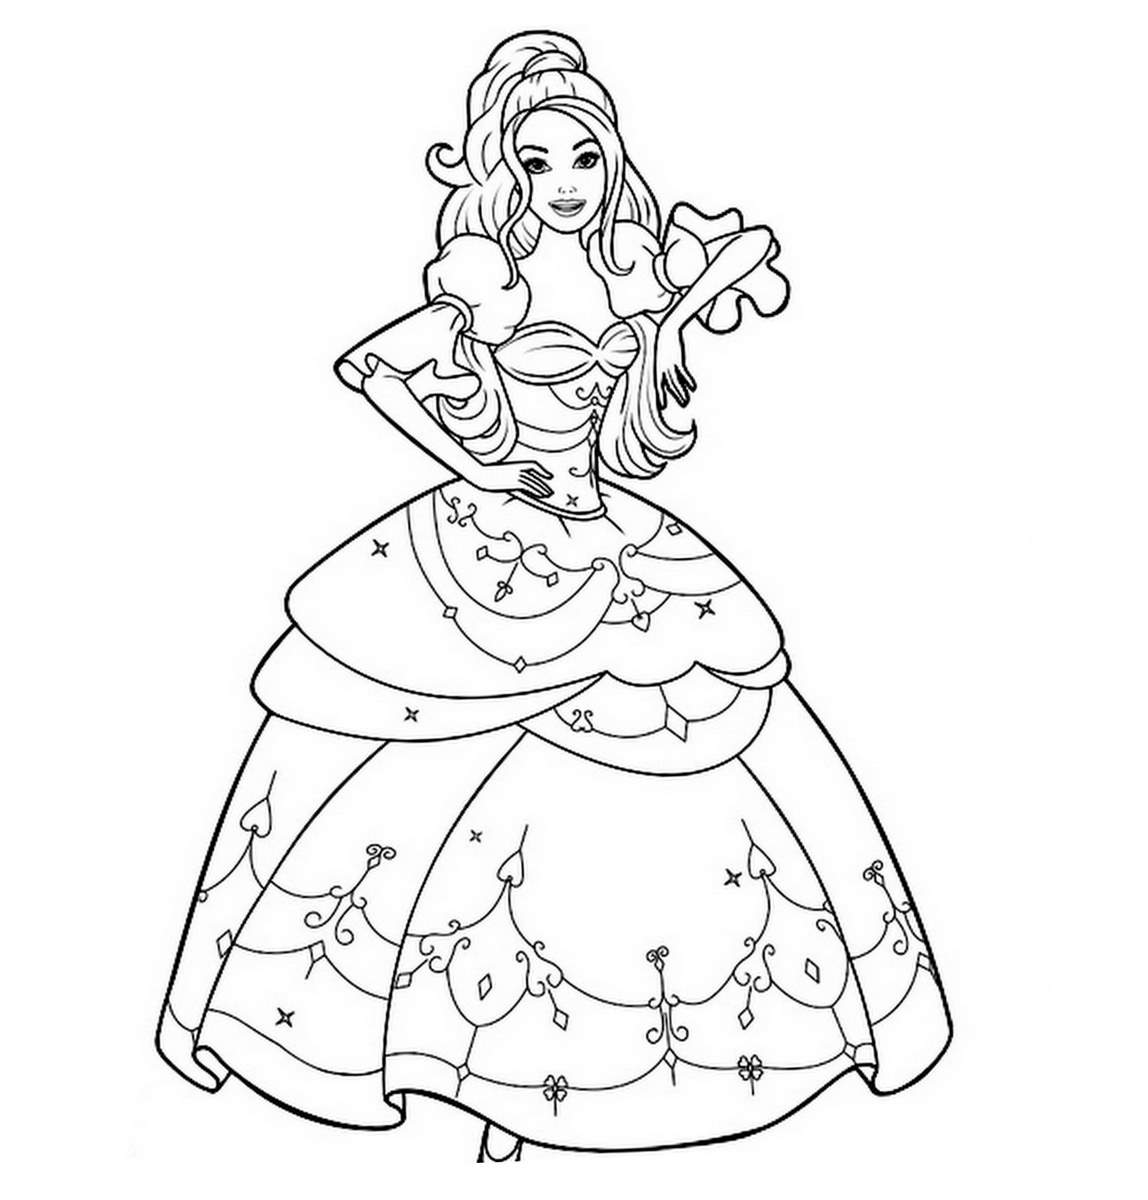 Coloriage princesse image et dessins arts et voyages - Barbie a colorier ...